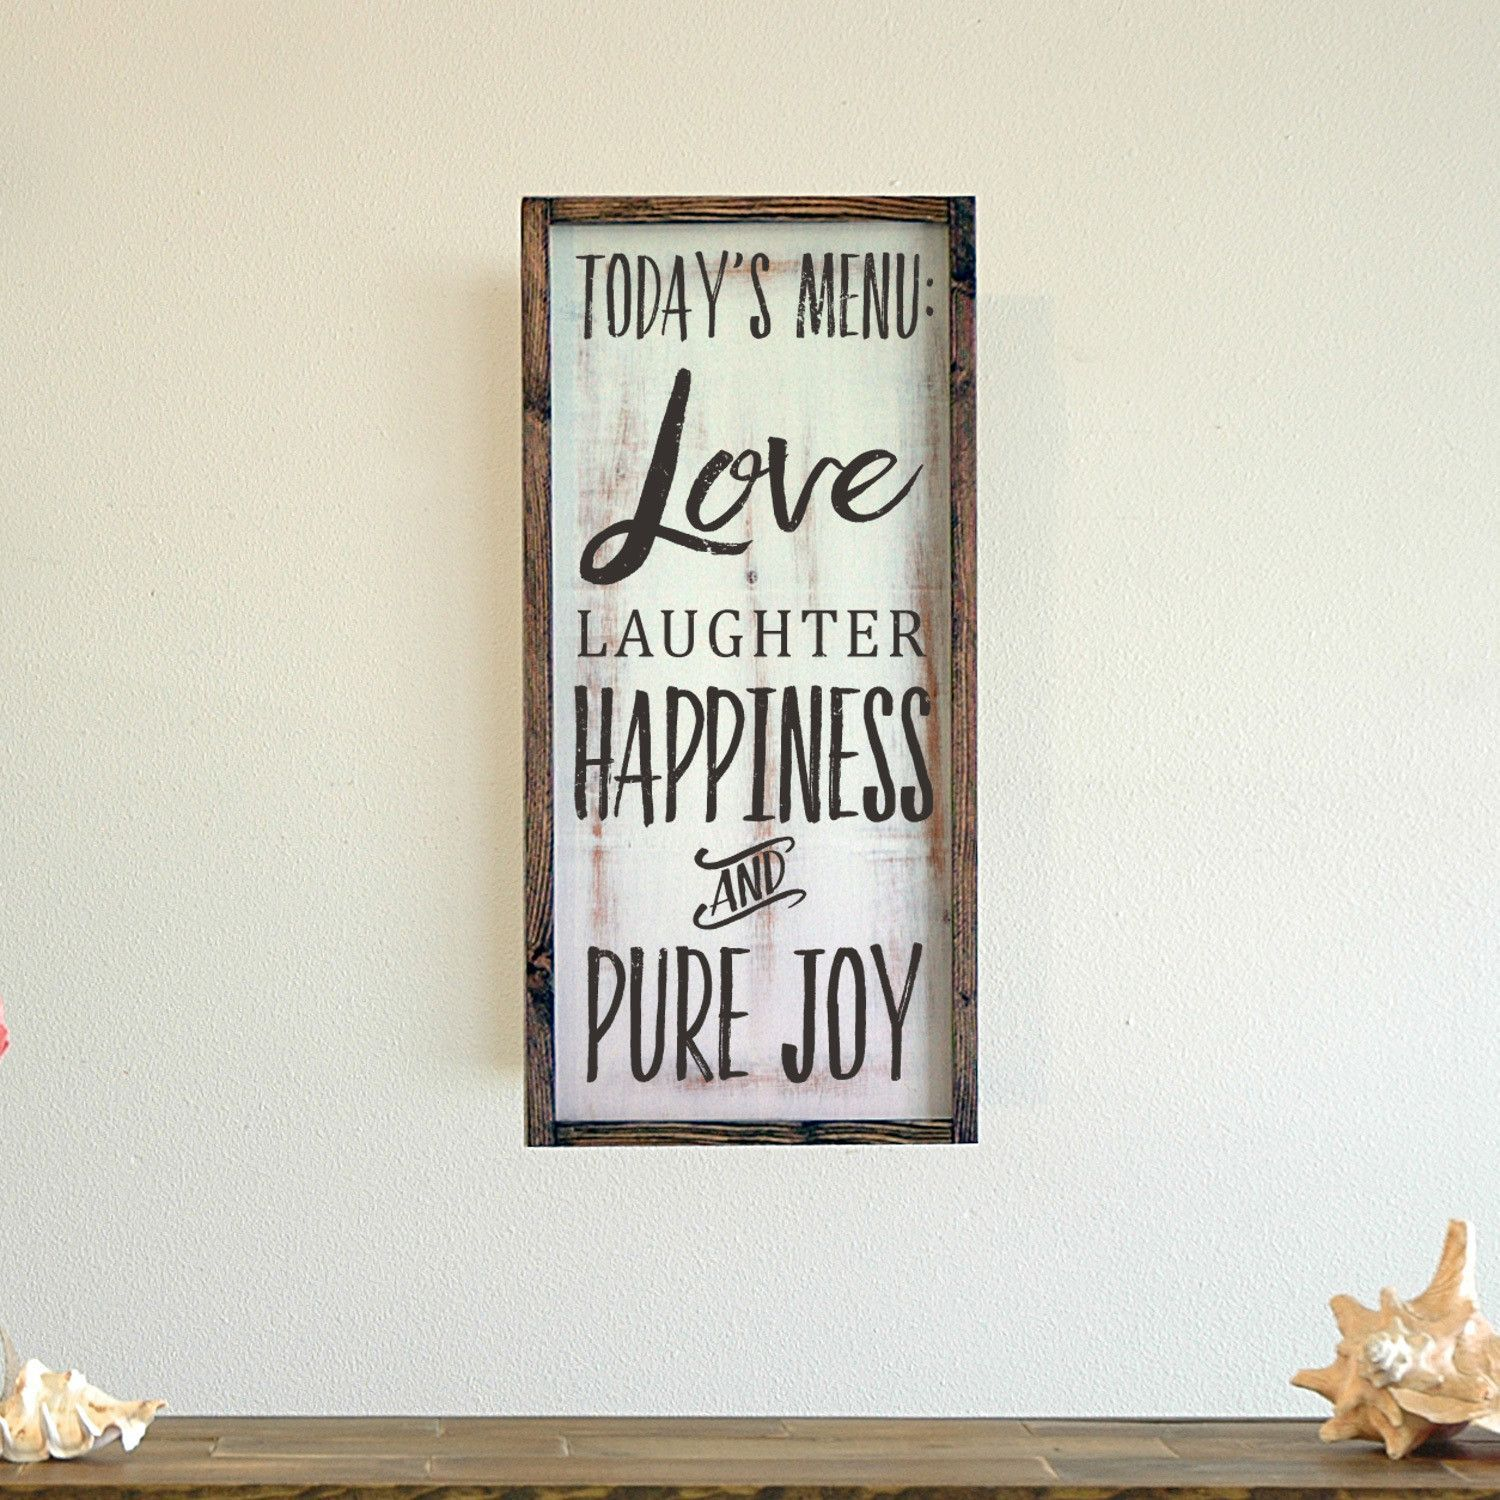 Love Laughter Happiness Pure Joy Framed Wall Art 11x22 Wooden Signs Wood Frame Sign Framed Letters